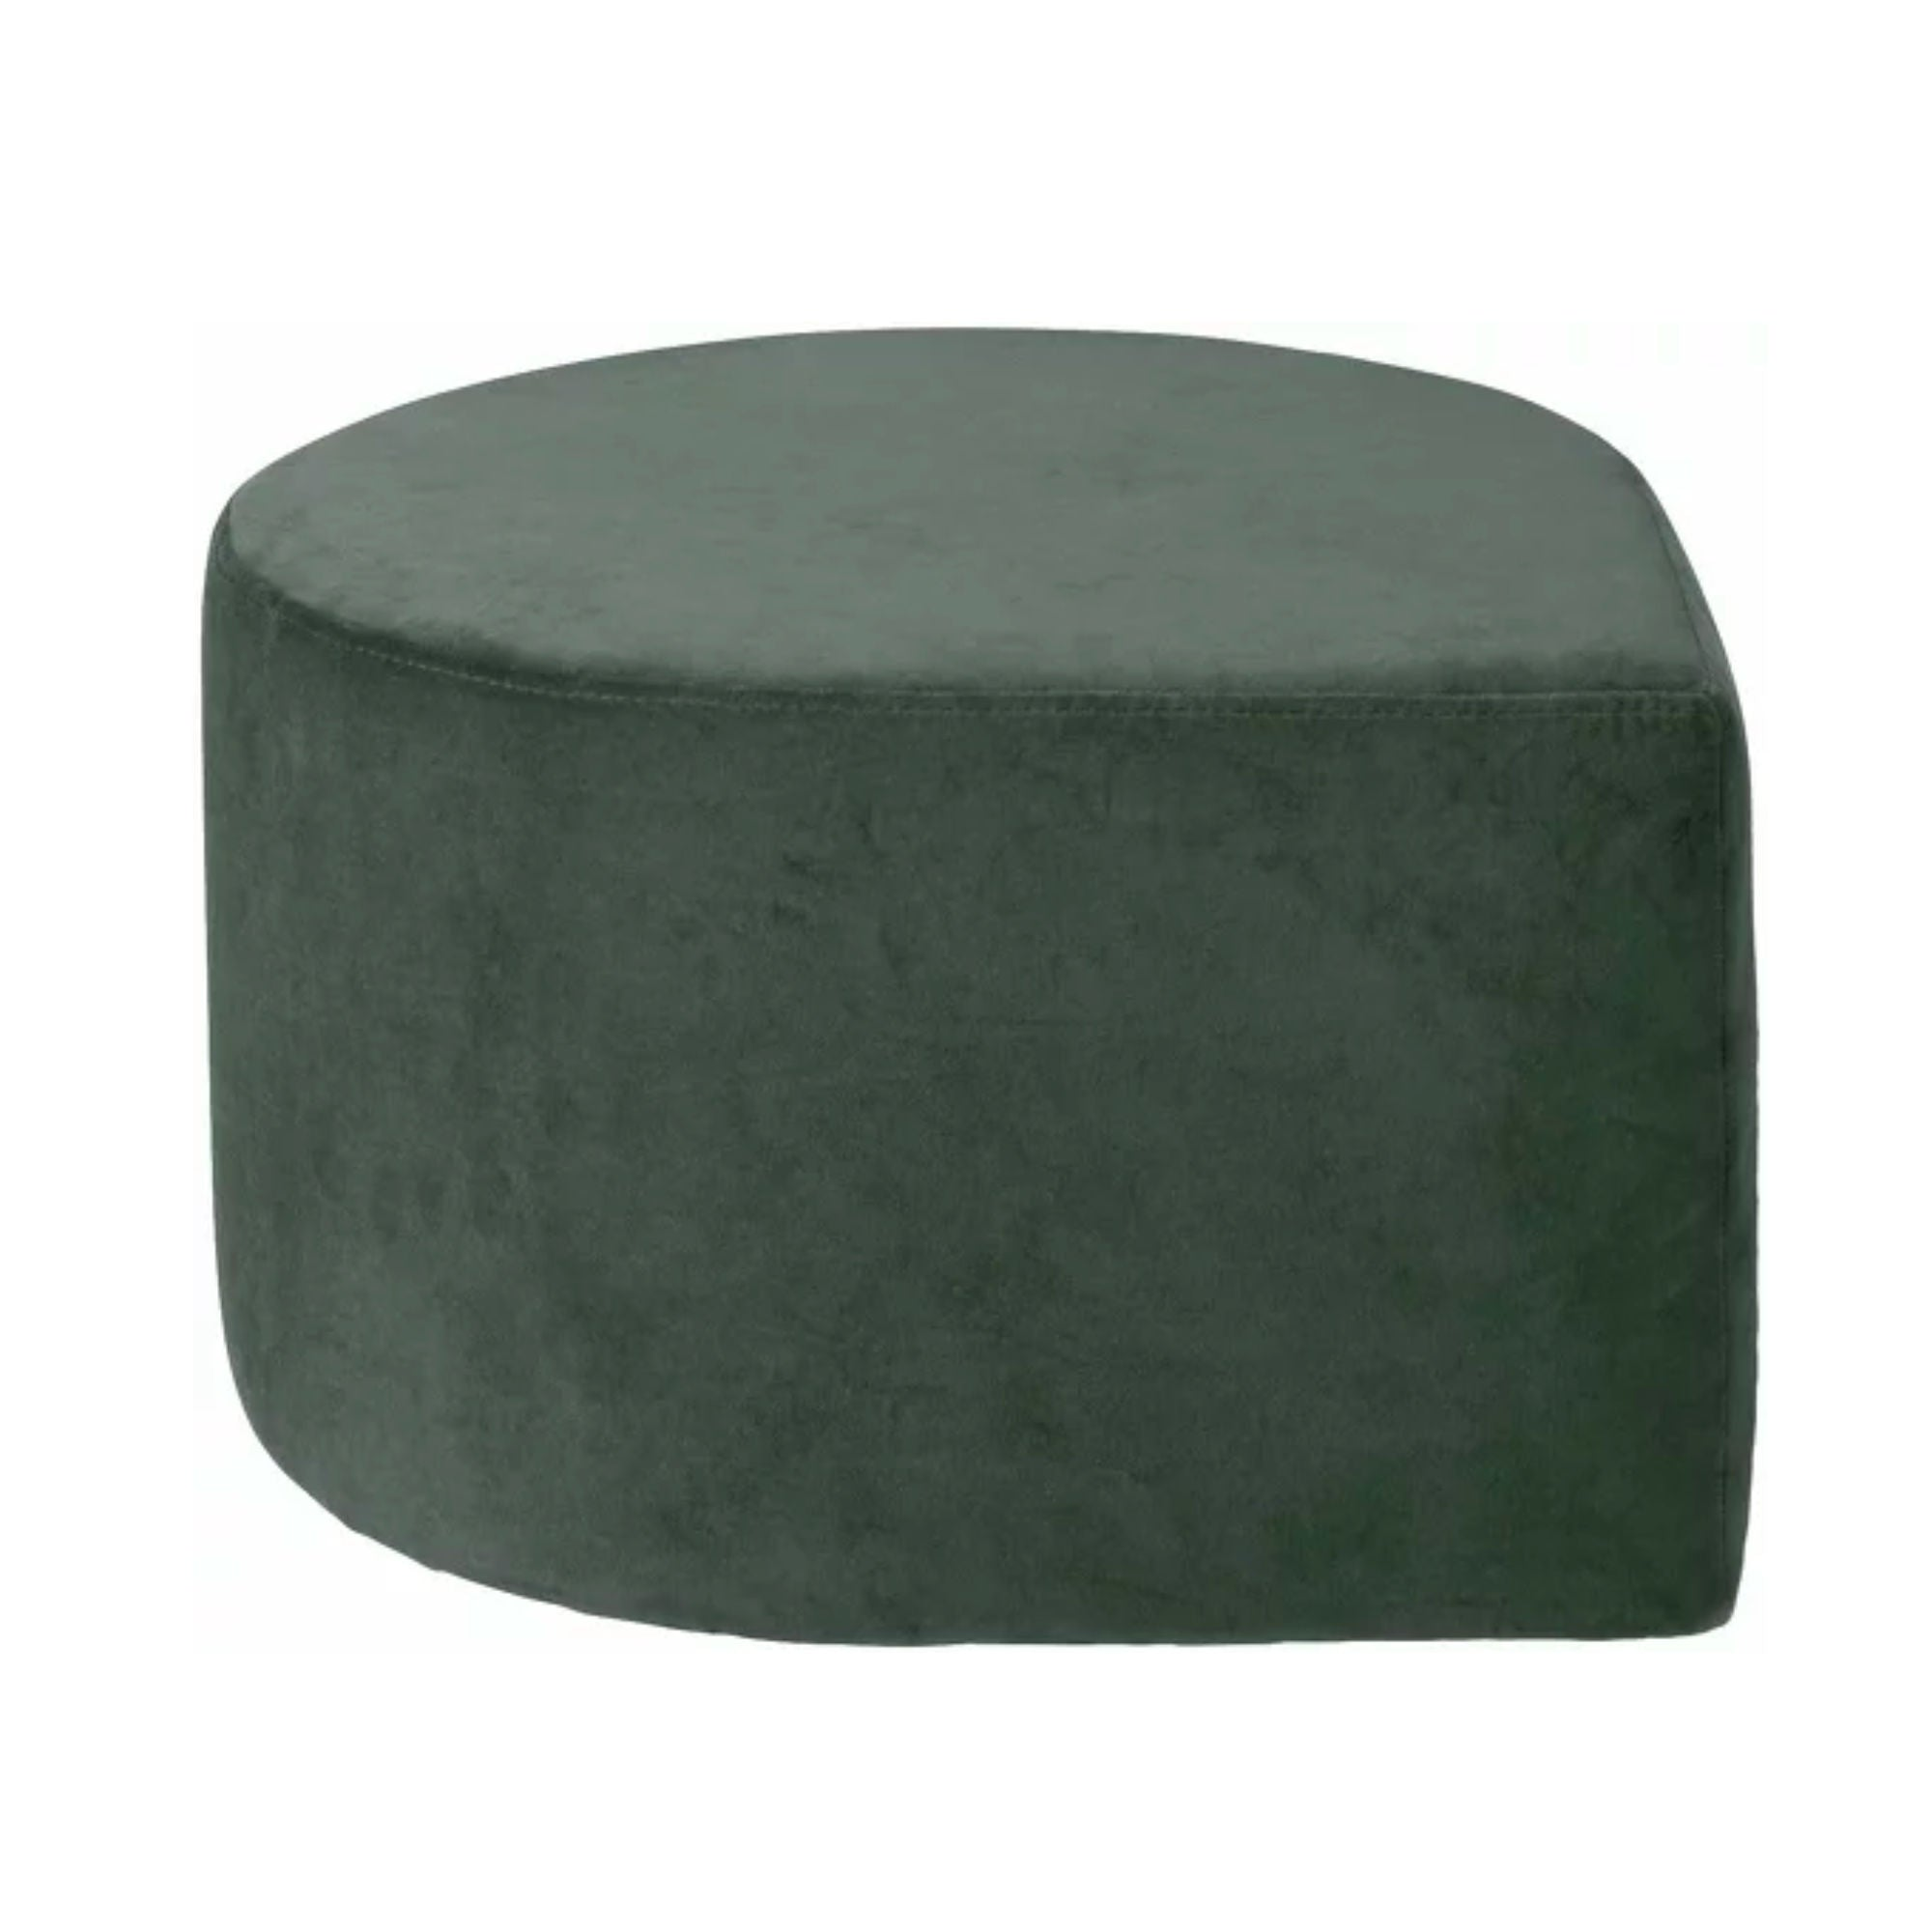 AYTM Stilla Pouf , Forest